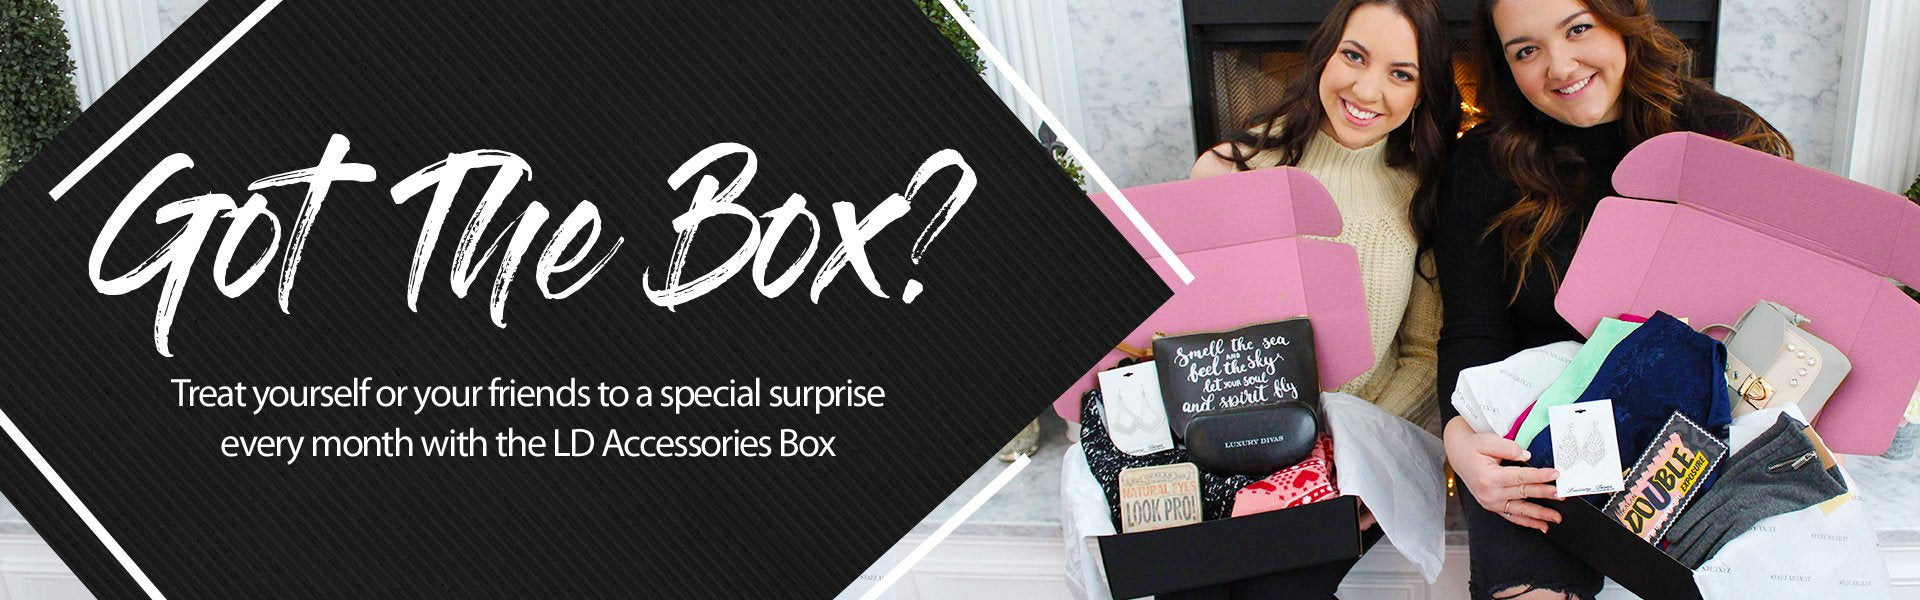 Get the LD Accessories Box now!